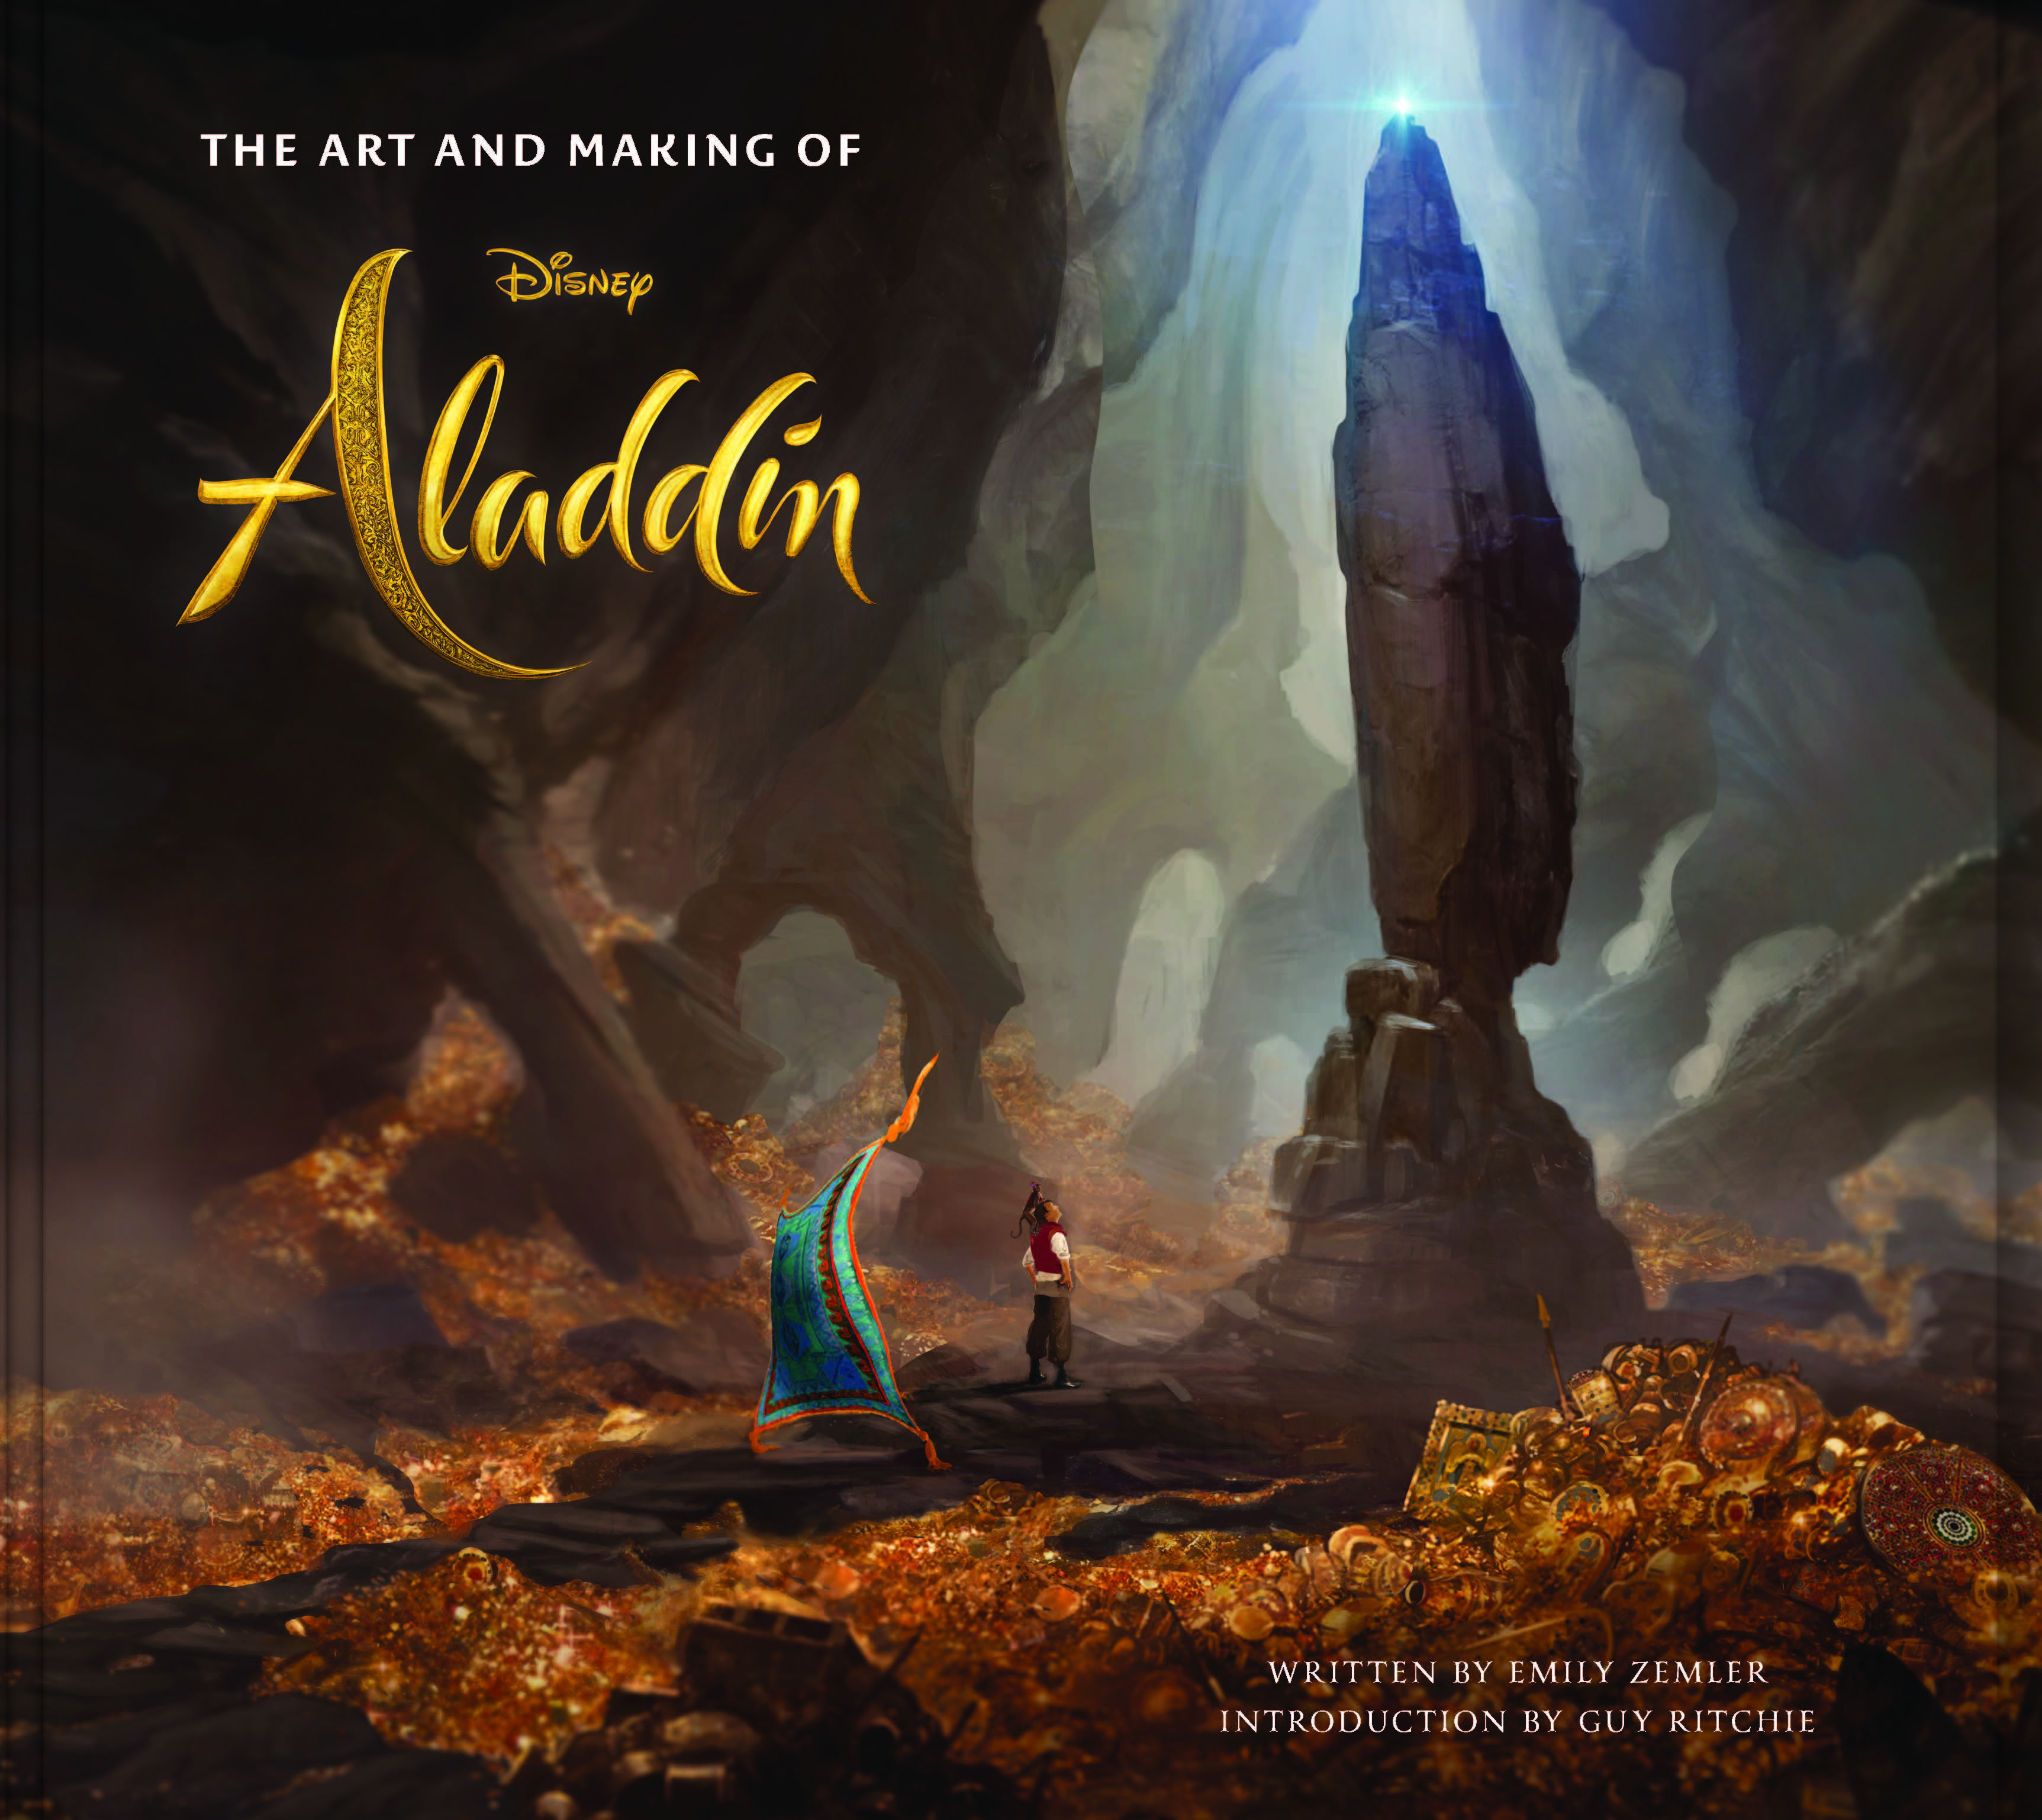 The Art and Making of Aladdin.